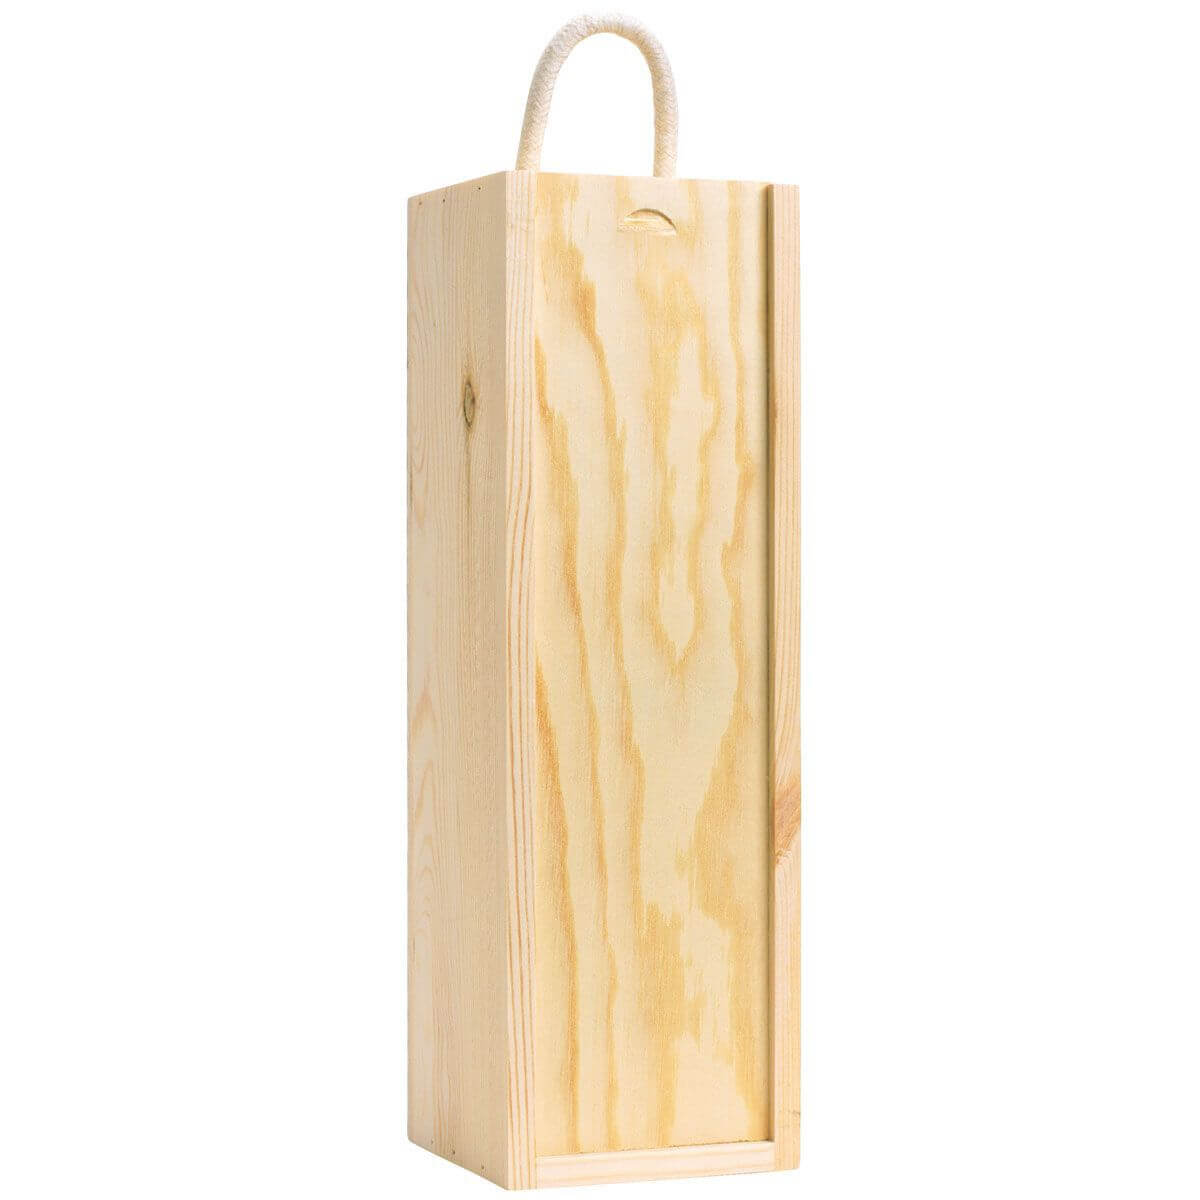 content/organic-wine/bottle-wooden-wine-box-with-sliding-lid-pack.jpg